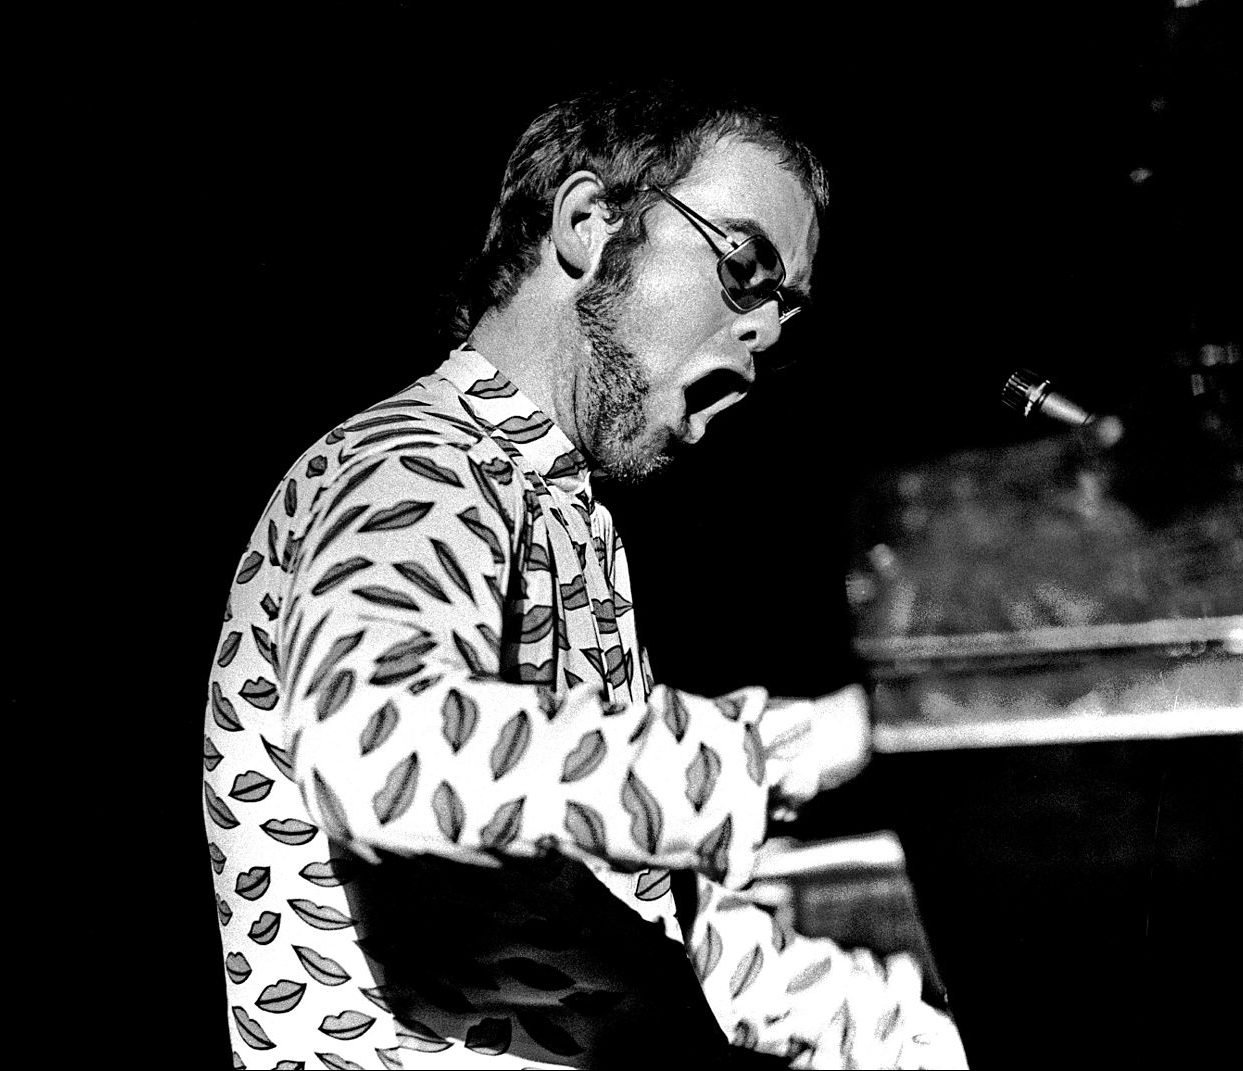 1 36 e1616670567550 23 Things You Didn't Know About Elton John